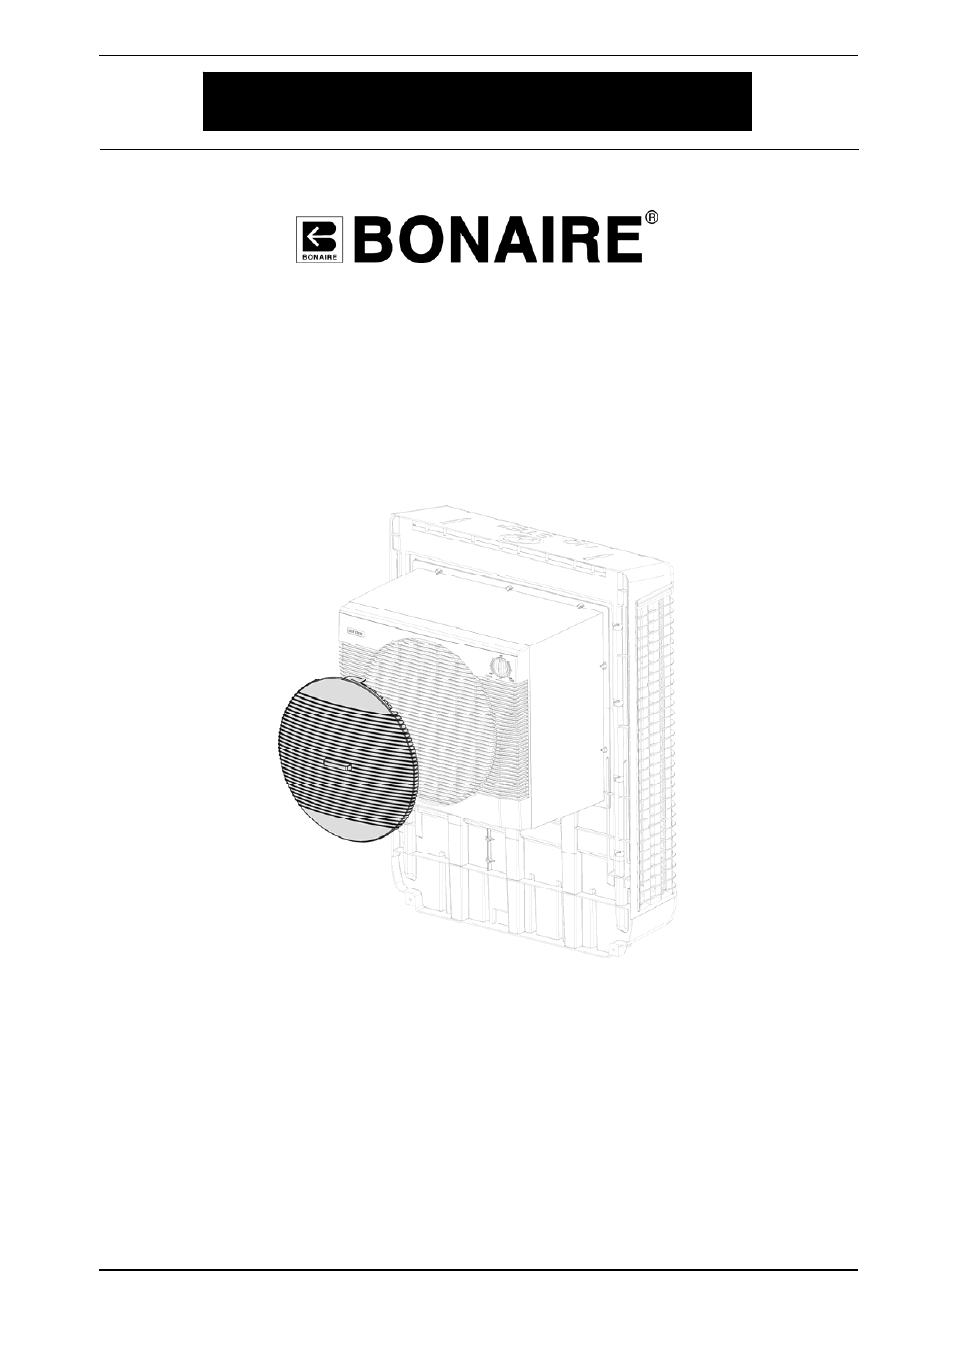 Bonaire Durango Winter Cover User Manual 4 Pages